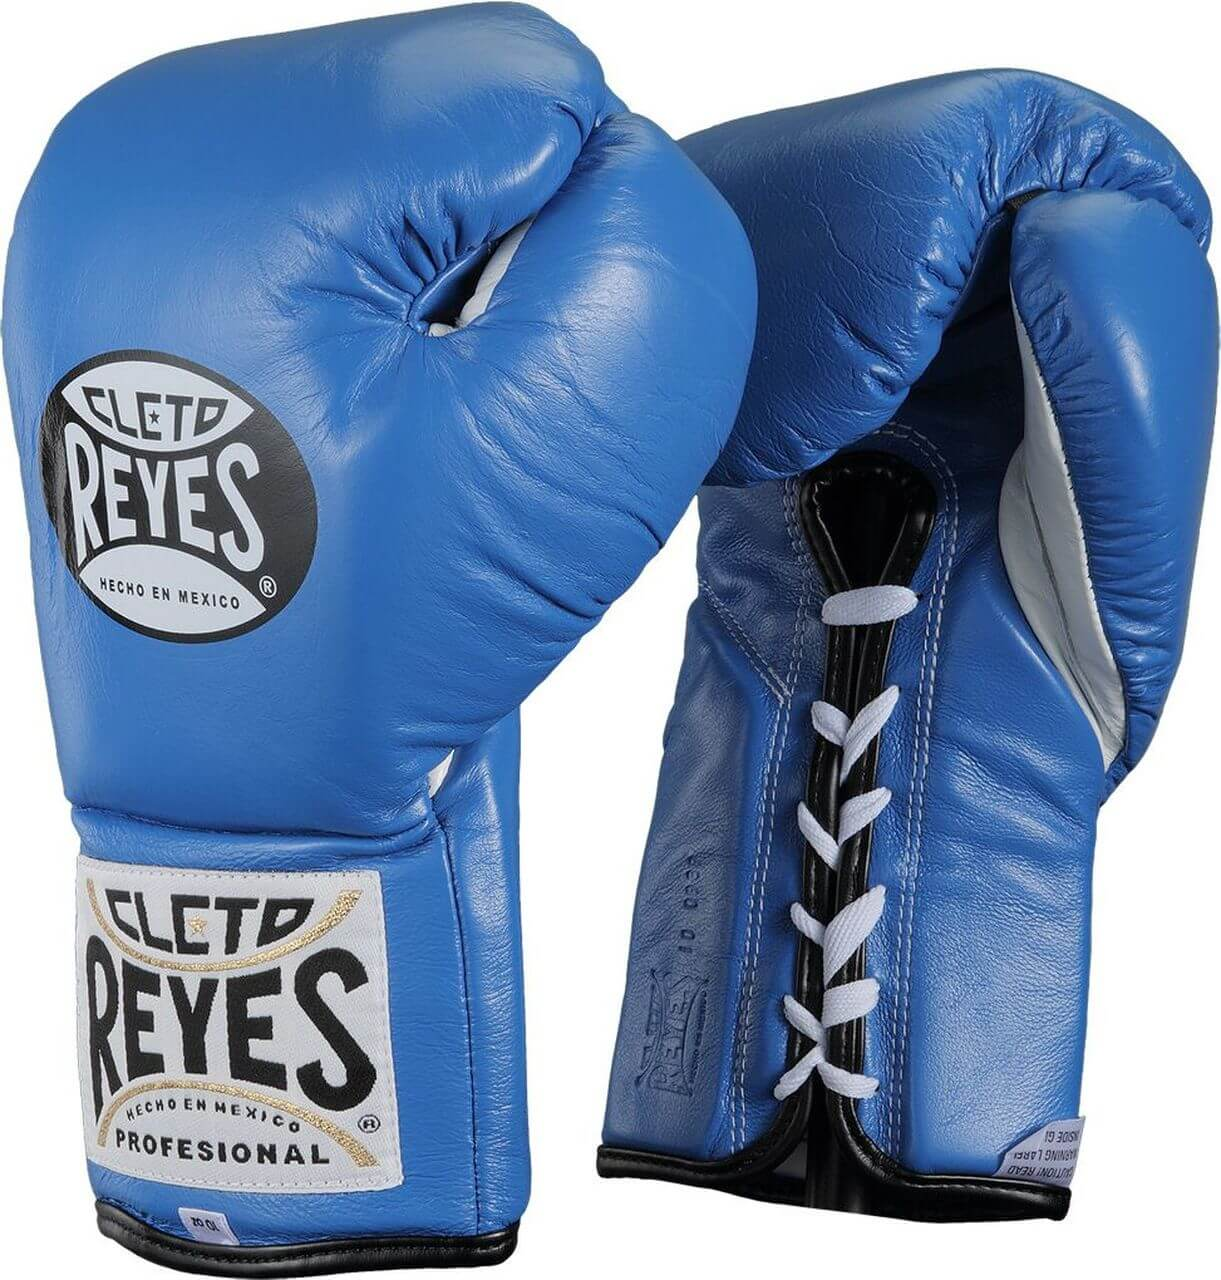 The Cleto Reyes Training Gloves With Hook and Loop - Best Bang for your Buck Boxing Training Gloves